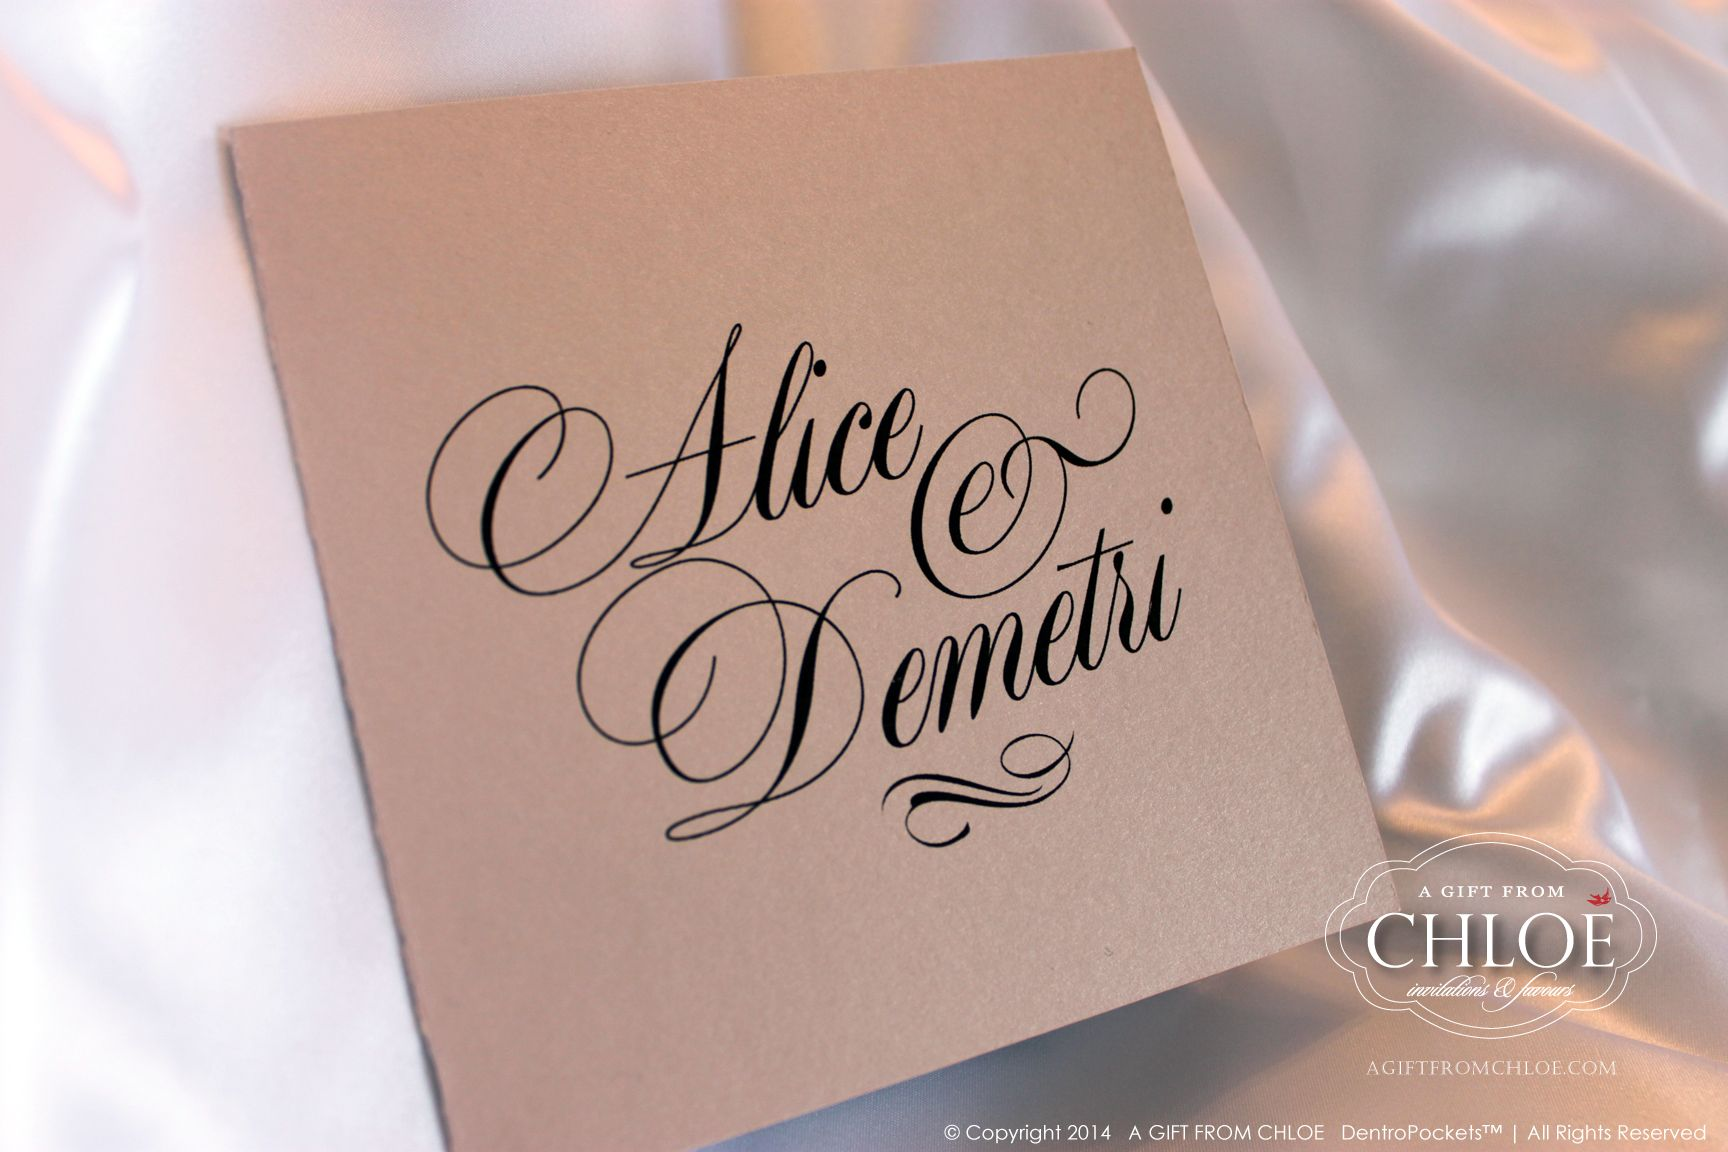 SIGNATURE GLAM vintage wedding invitation pocket cover - Colours: Taupe, Latte, Silver, and Brown. www.agiftfromchloe.com #art-deco_invitations #metallic_wedding #neutral_invitations #glam_wedding #vintage_wedding #deco_wedding